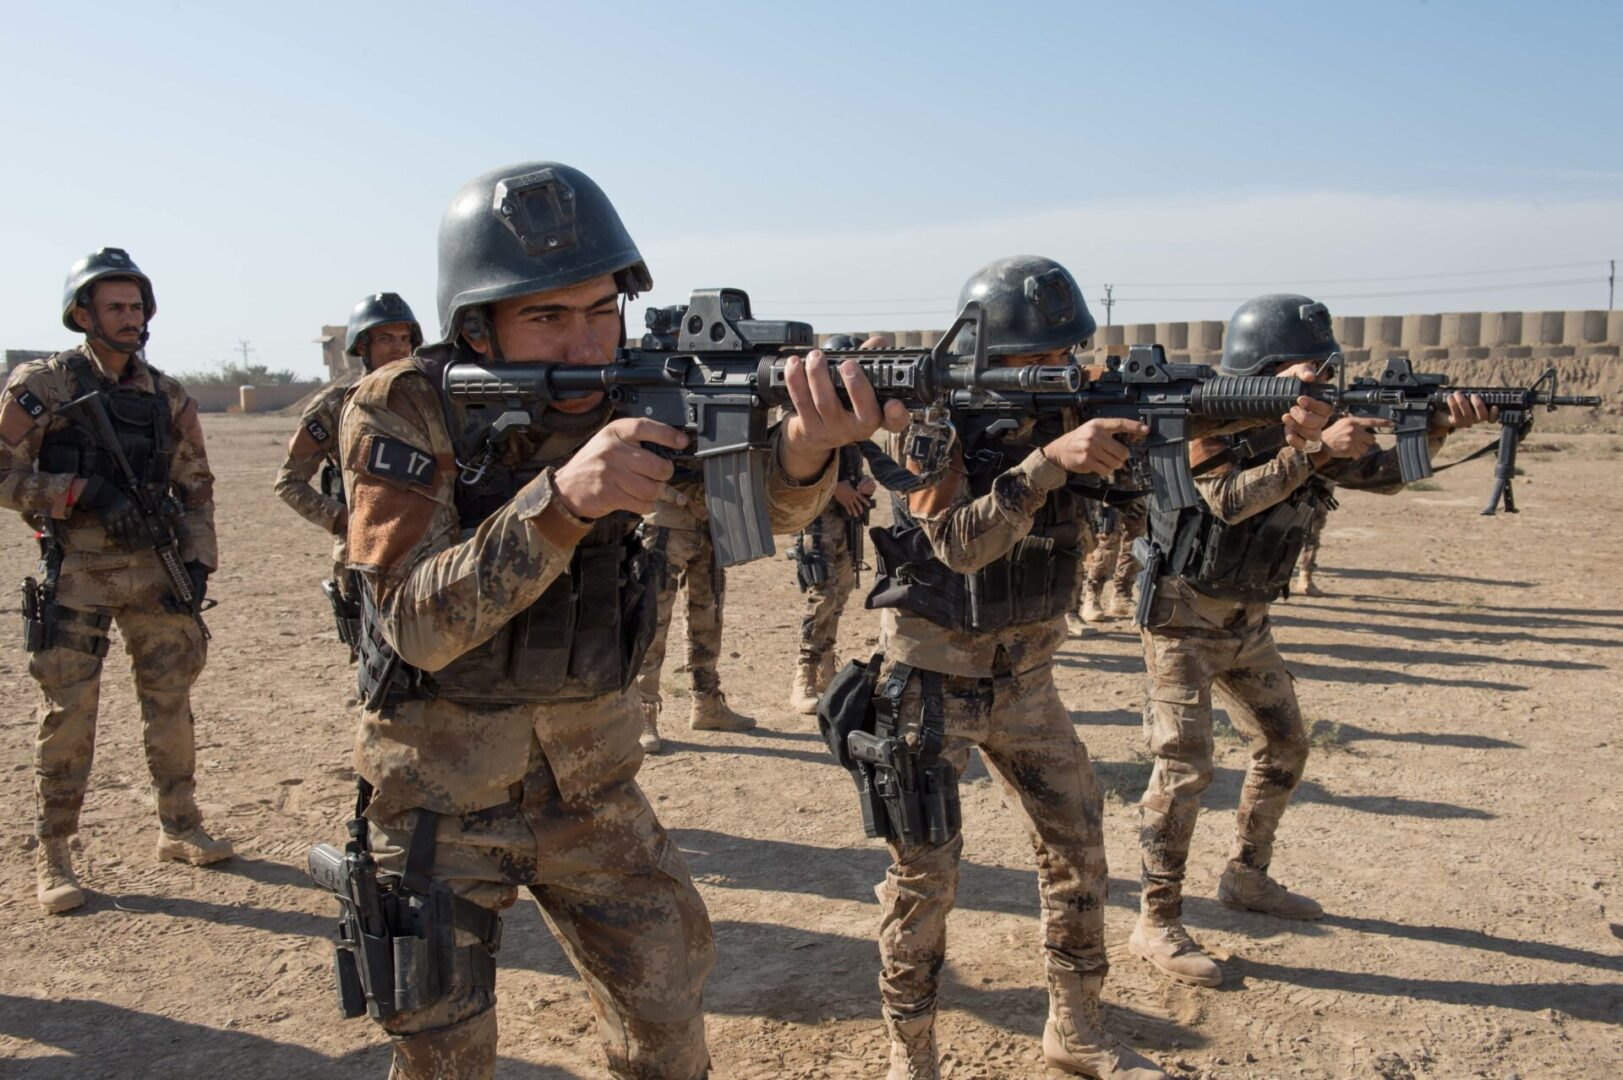 Iraq Army soldiers fire their rifles on a range as part of the Iraqi Counter-Terrorism Service's selection process near Baghdad, Nov. 8, 2016. The CTS is Iraq's elite counterterrorism force and has proven to be an effective fighting force against ISIL.   This training is part of the overall Combined Joint Task Force – Operation Inherent Resolve building partner capacity mission to increase the capacity of partnered forces fighting ISIL.   Combined Joint Task Force - OIR is the global Coalition to defeat ISIL in Iraq and Syria. (U.S. Army photo by Staff Sgt. Alex Manne)